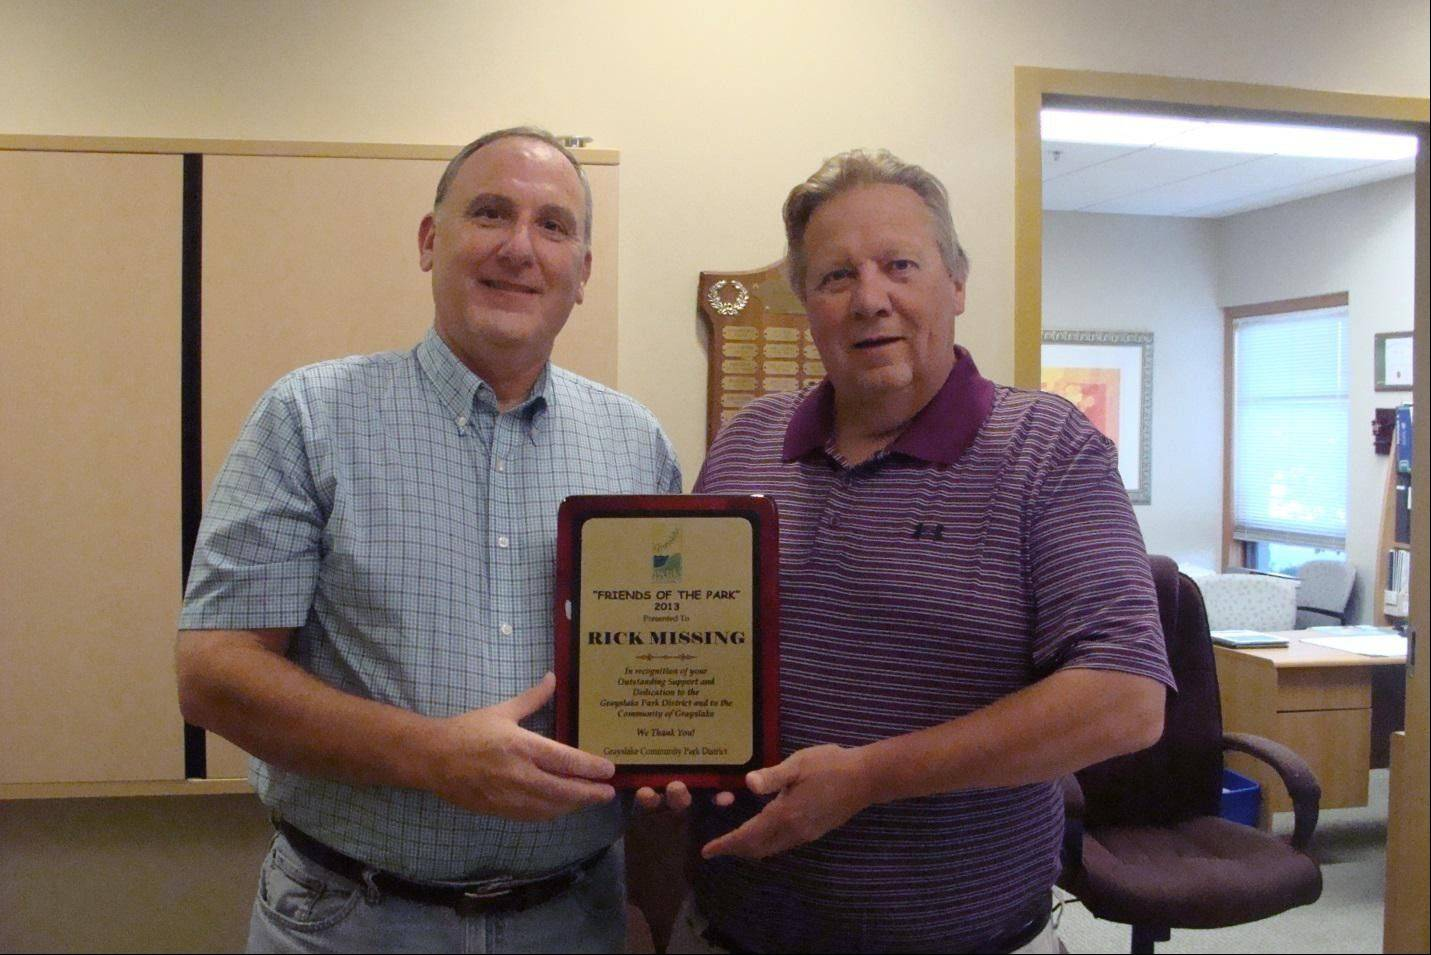 Grayslake Park Board President Ken Ryan presents the 2013 Friends of the Park Award to Rick Missing.